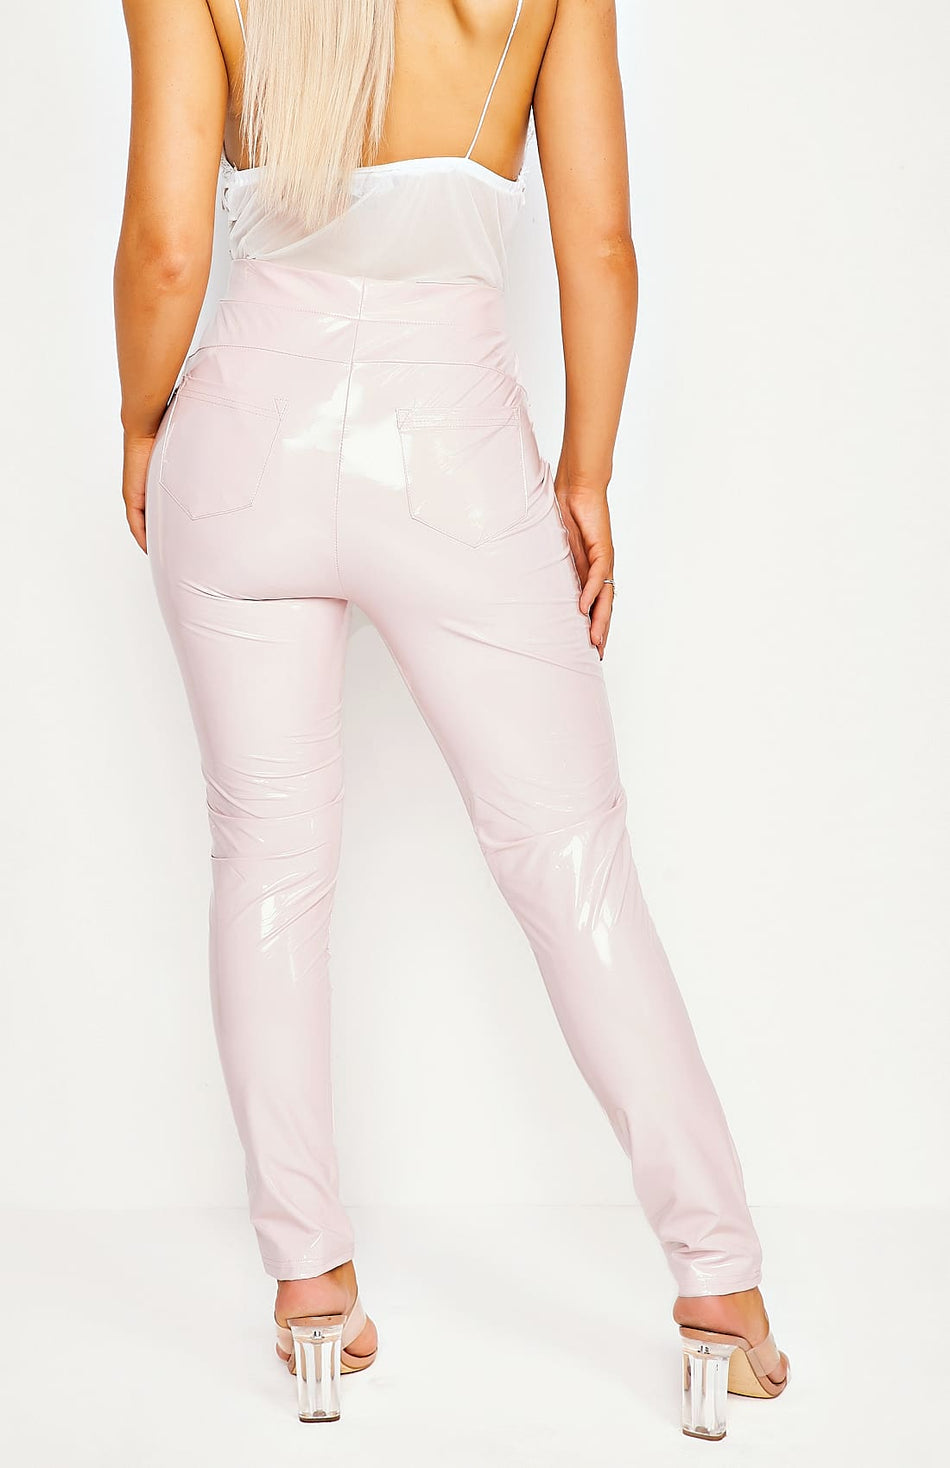 Pink Wet Look High Waist Jeggings